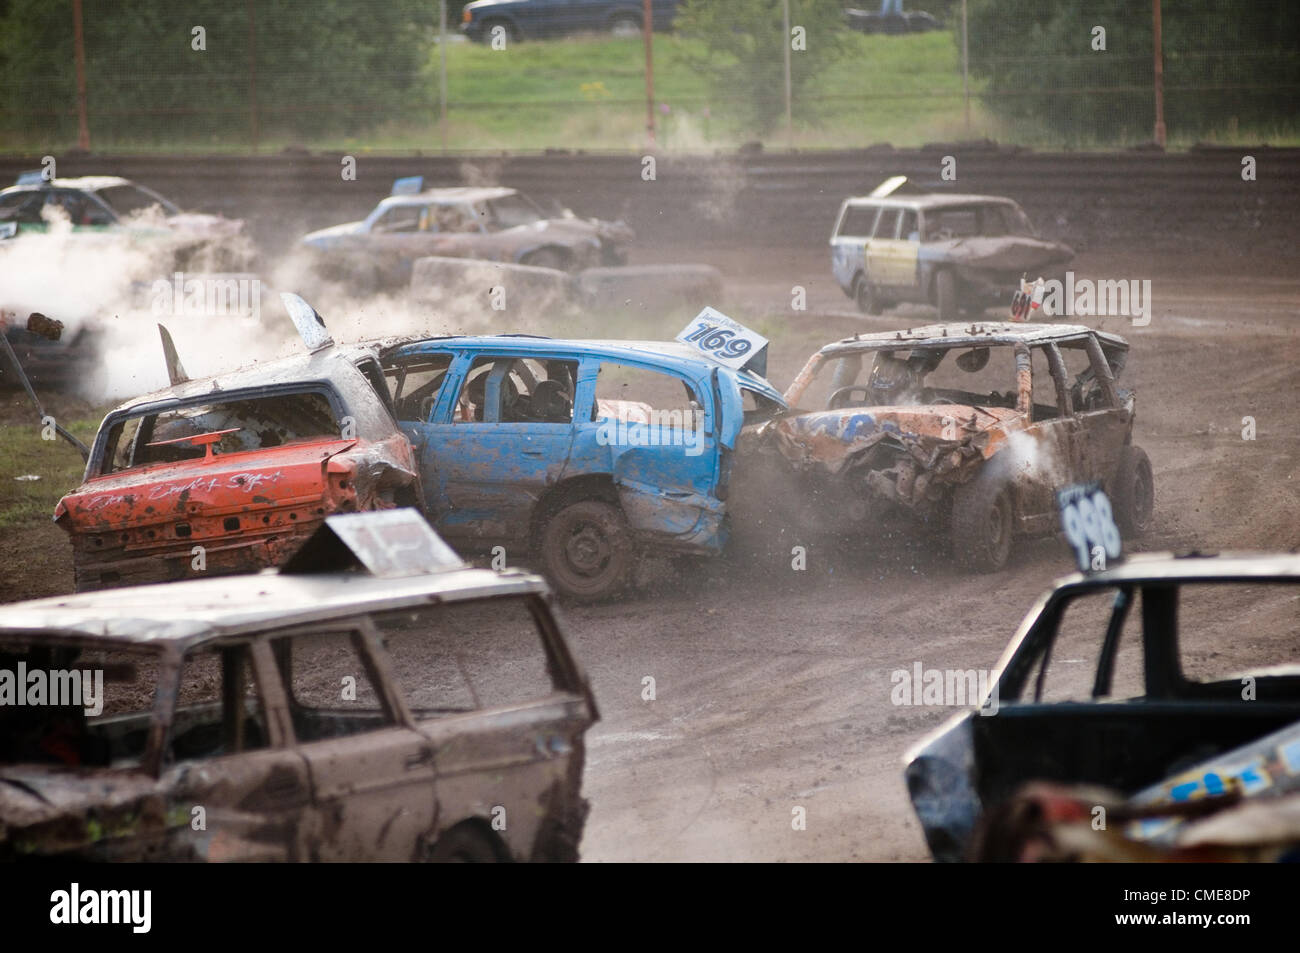 Banger Race Racing Crash Sequence Track Stock Cars Car Crashes